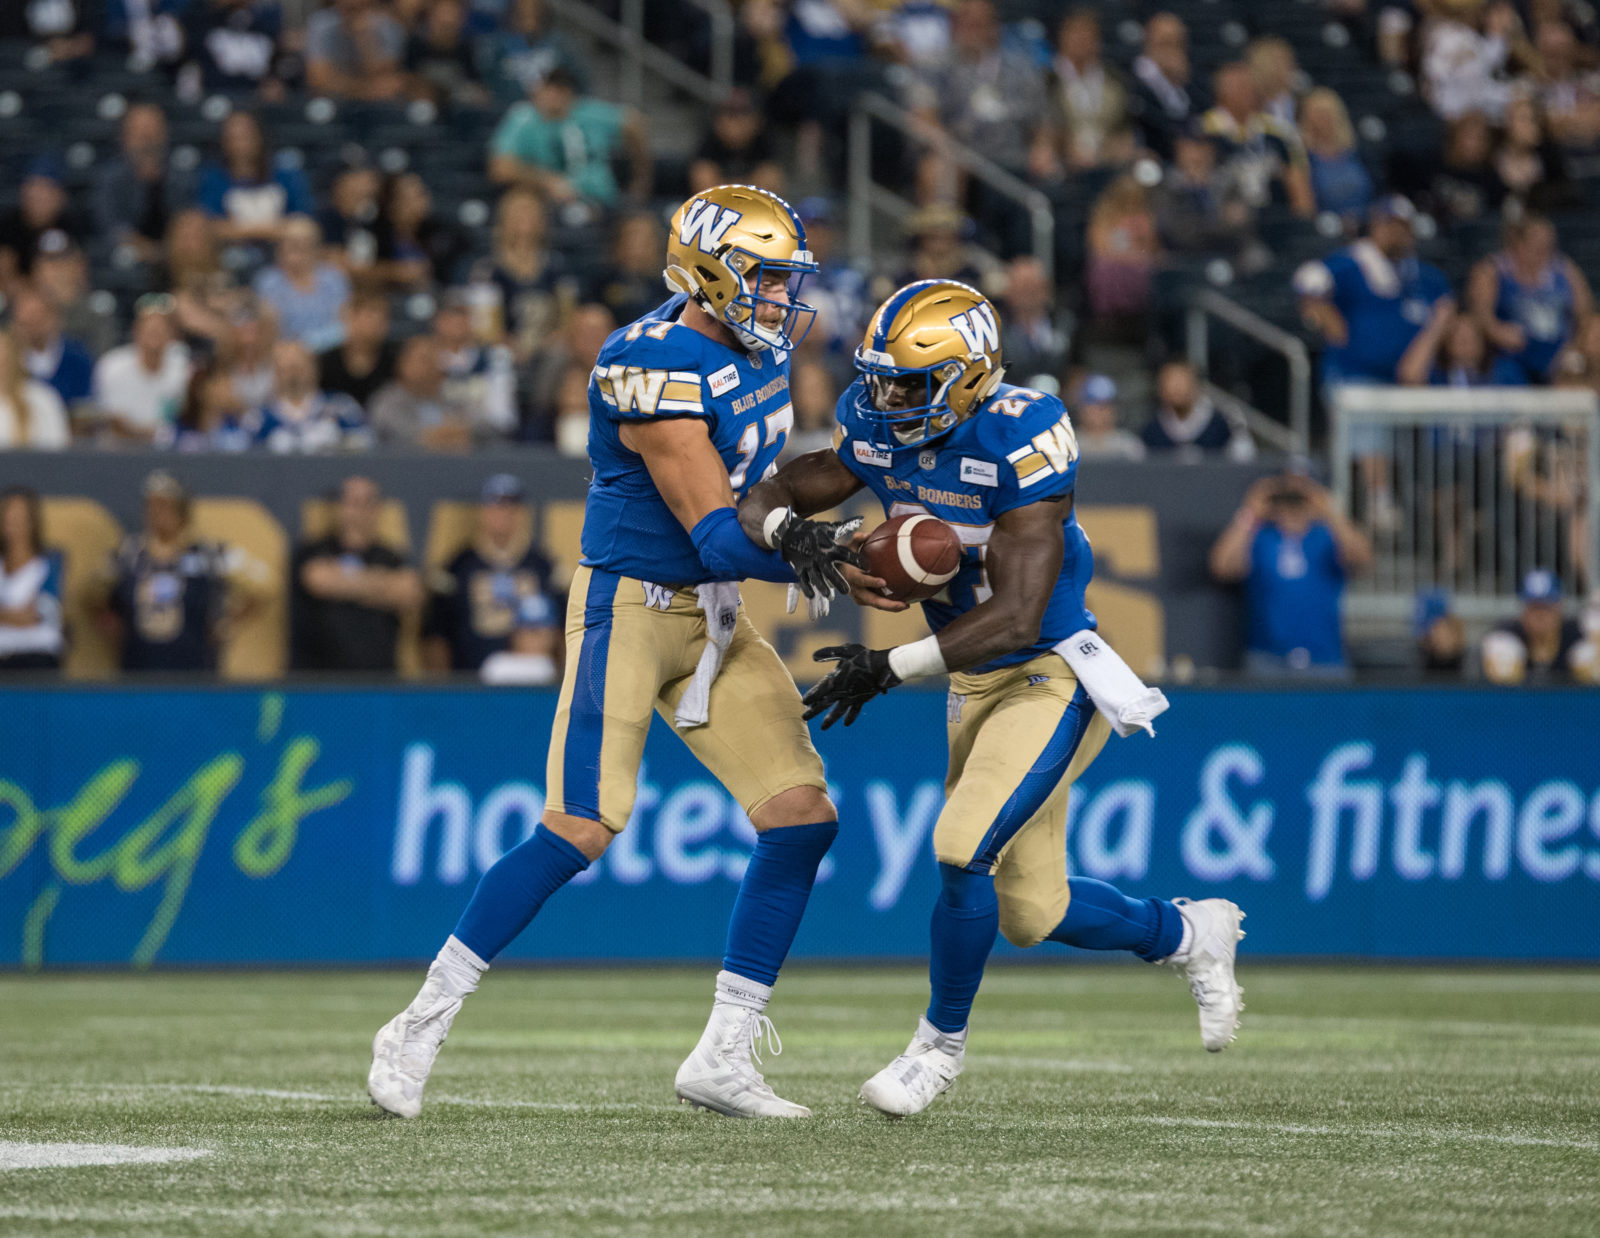 Upon Further Review | BC 16 WPG 32 - Winnipeg Blue Bombers